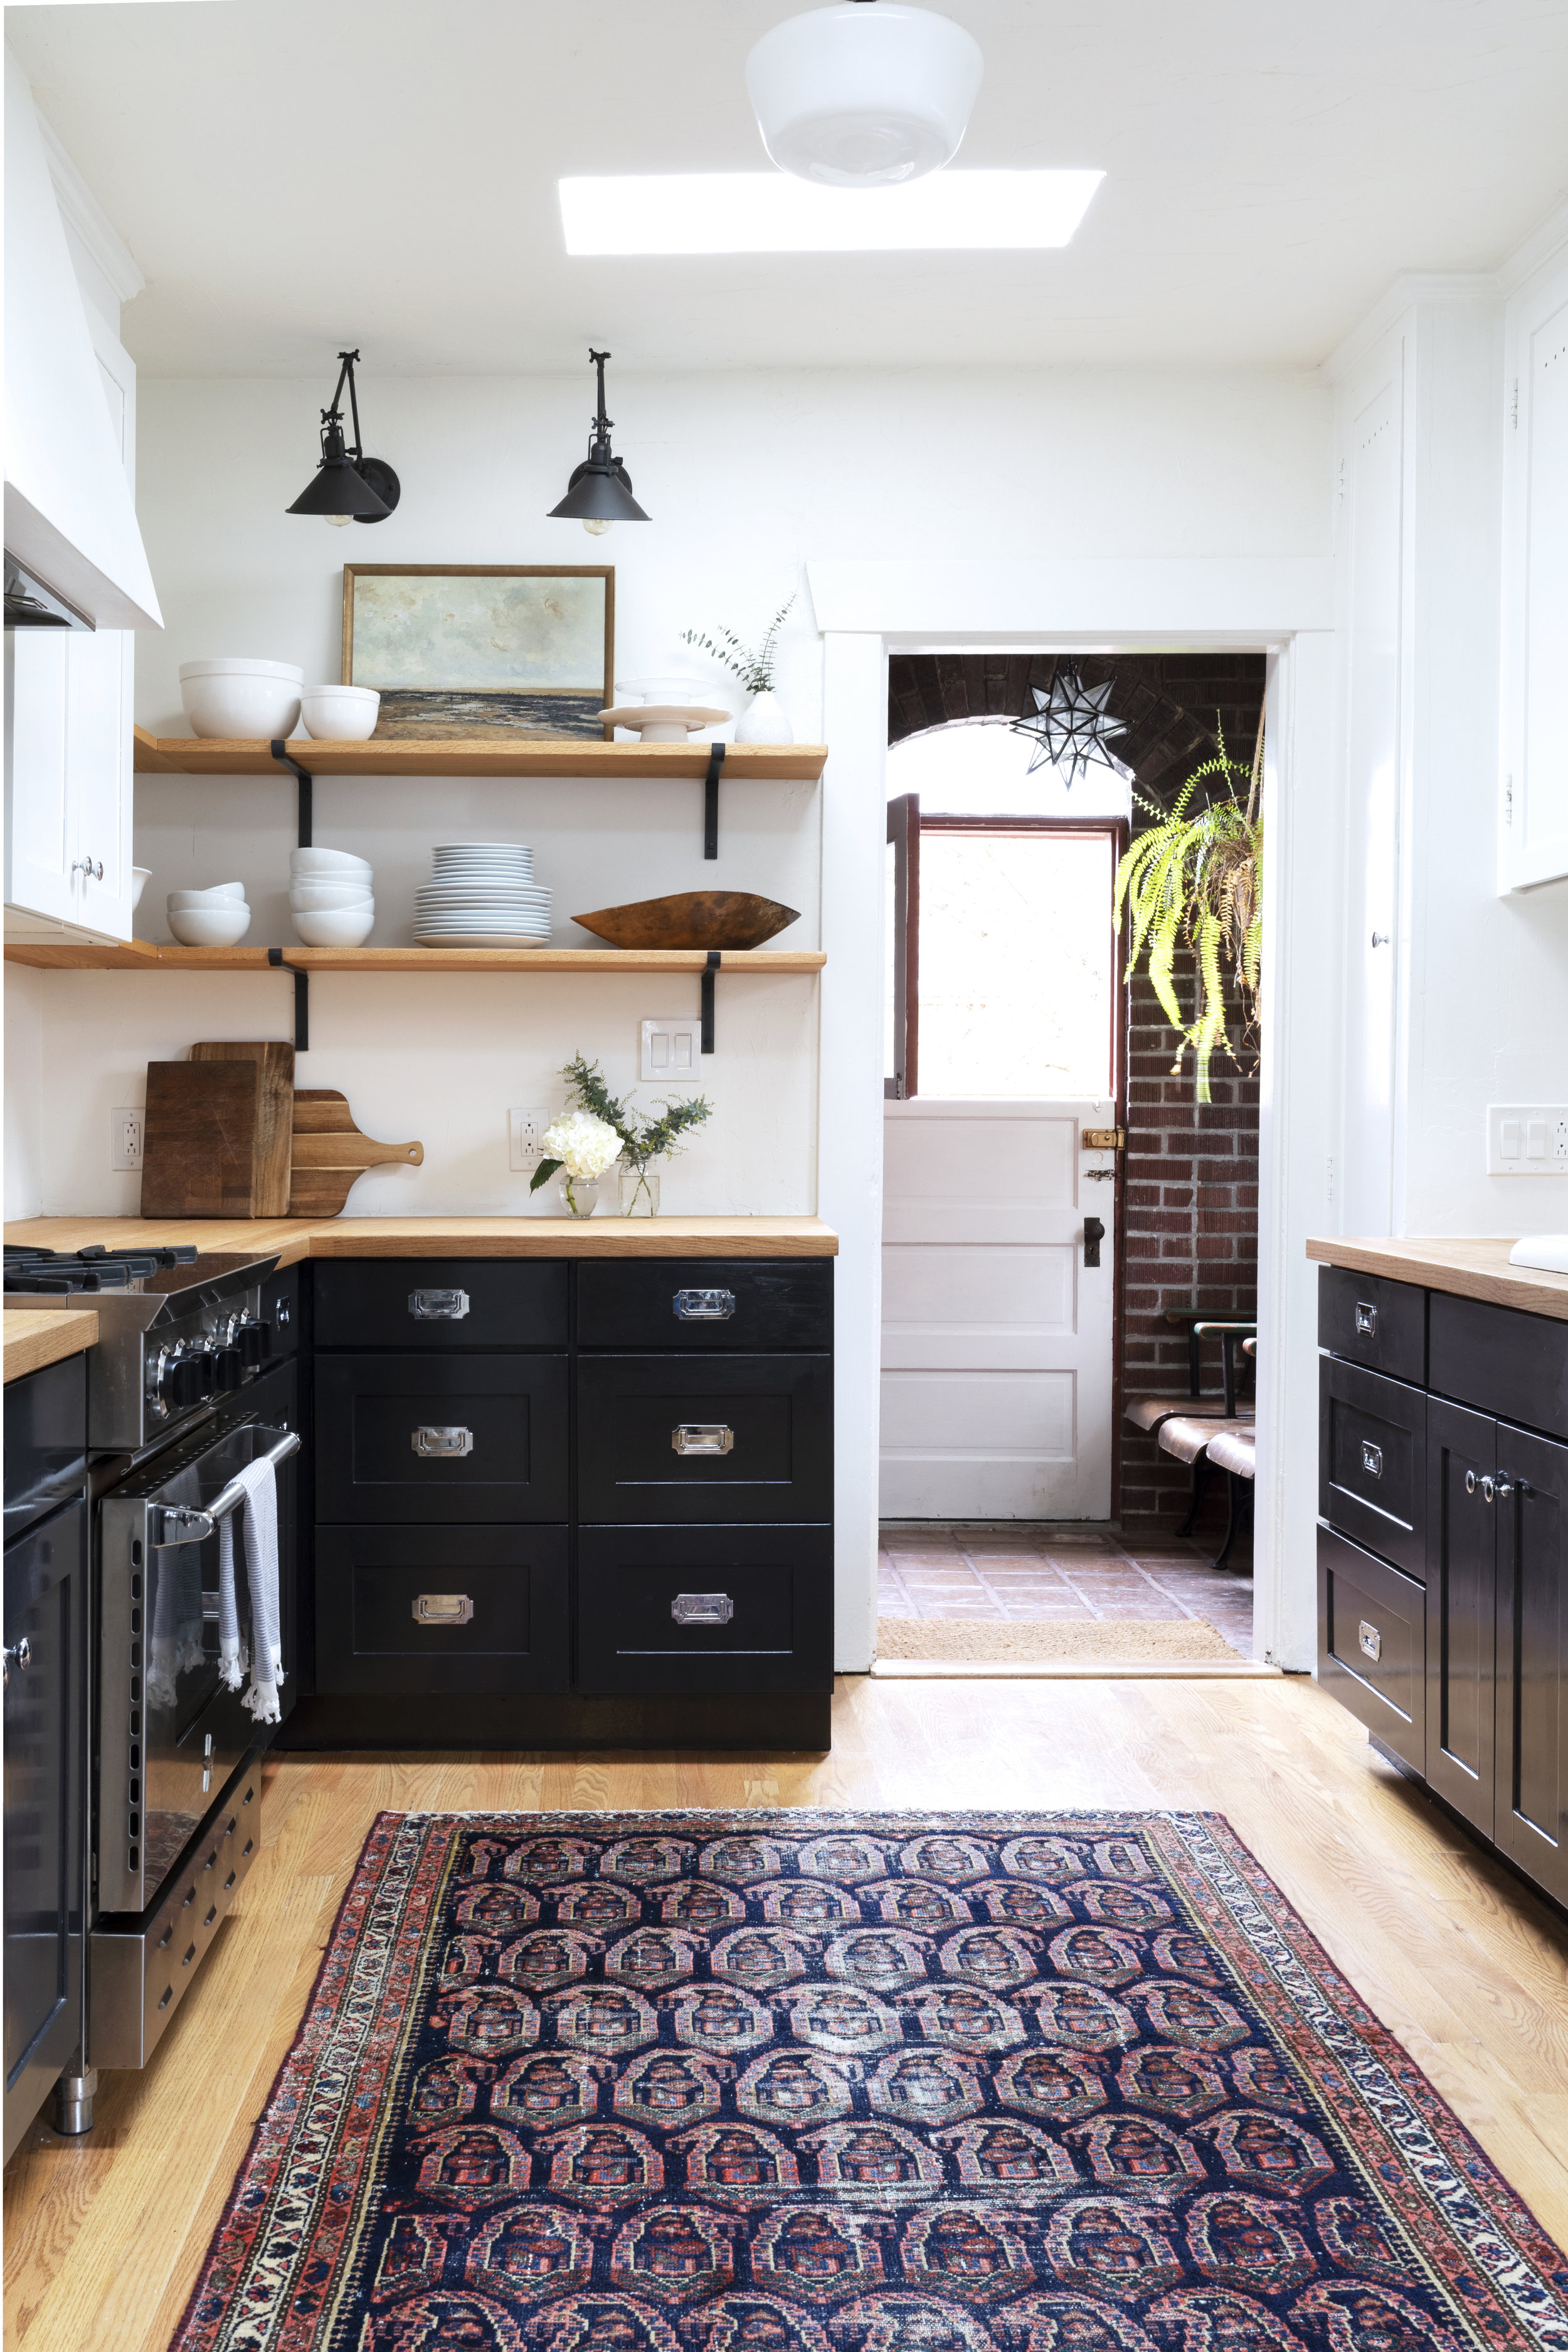 The Grit and Polish - Dexter Black, White, and Wood Kitchen CORRECTED.jpg